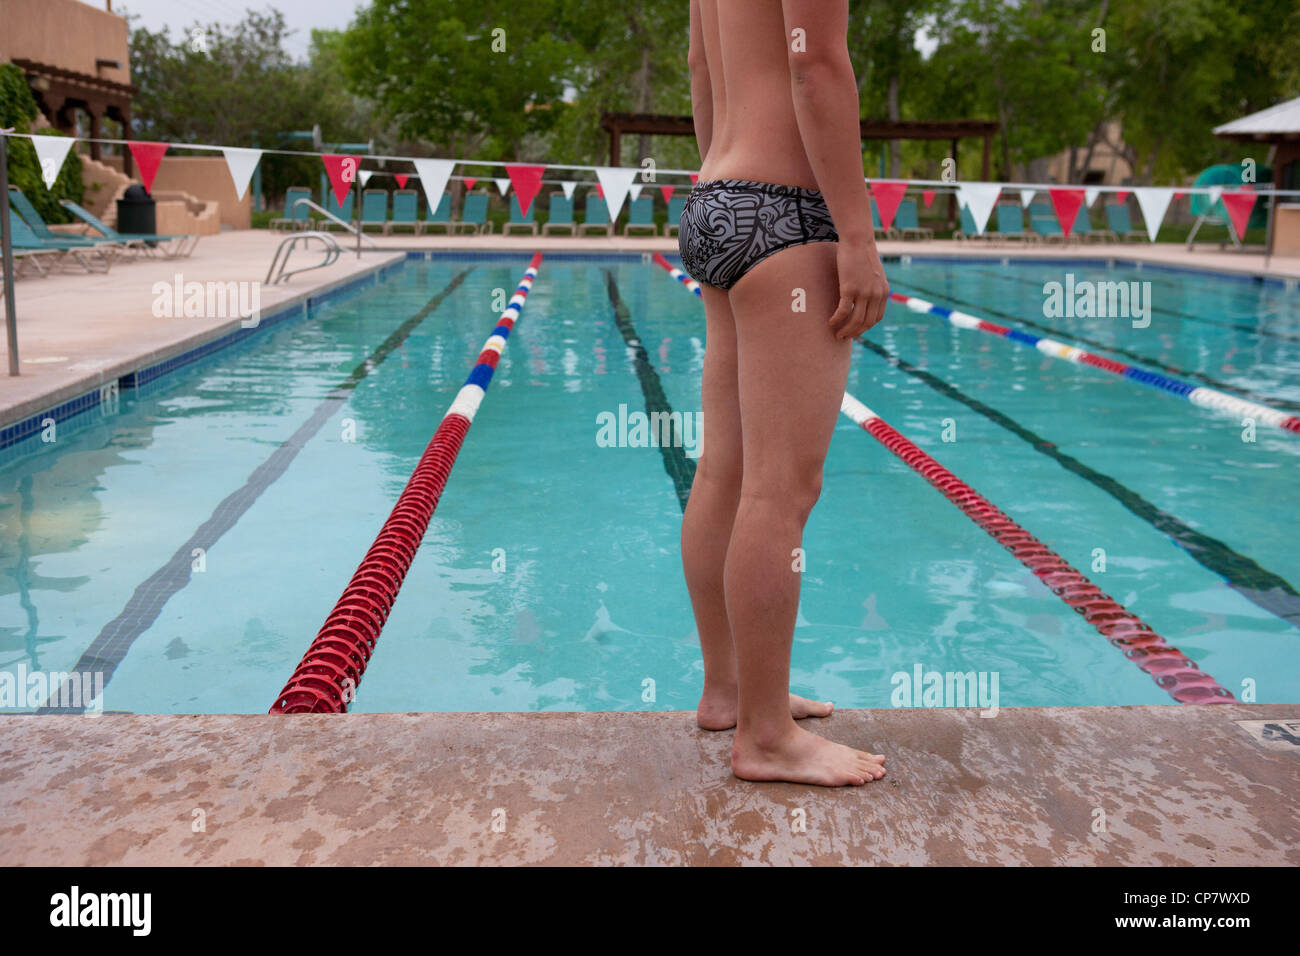 Swimmer taking a break and standing on the edge of the swimming pool. - Stock Image